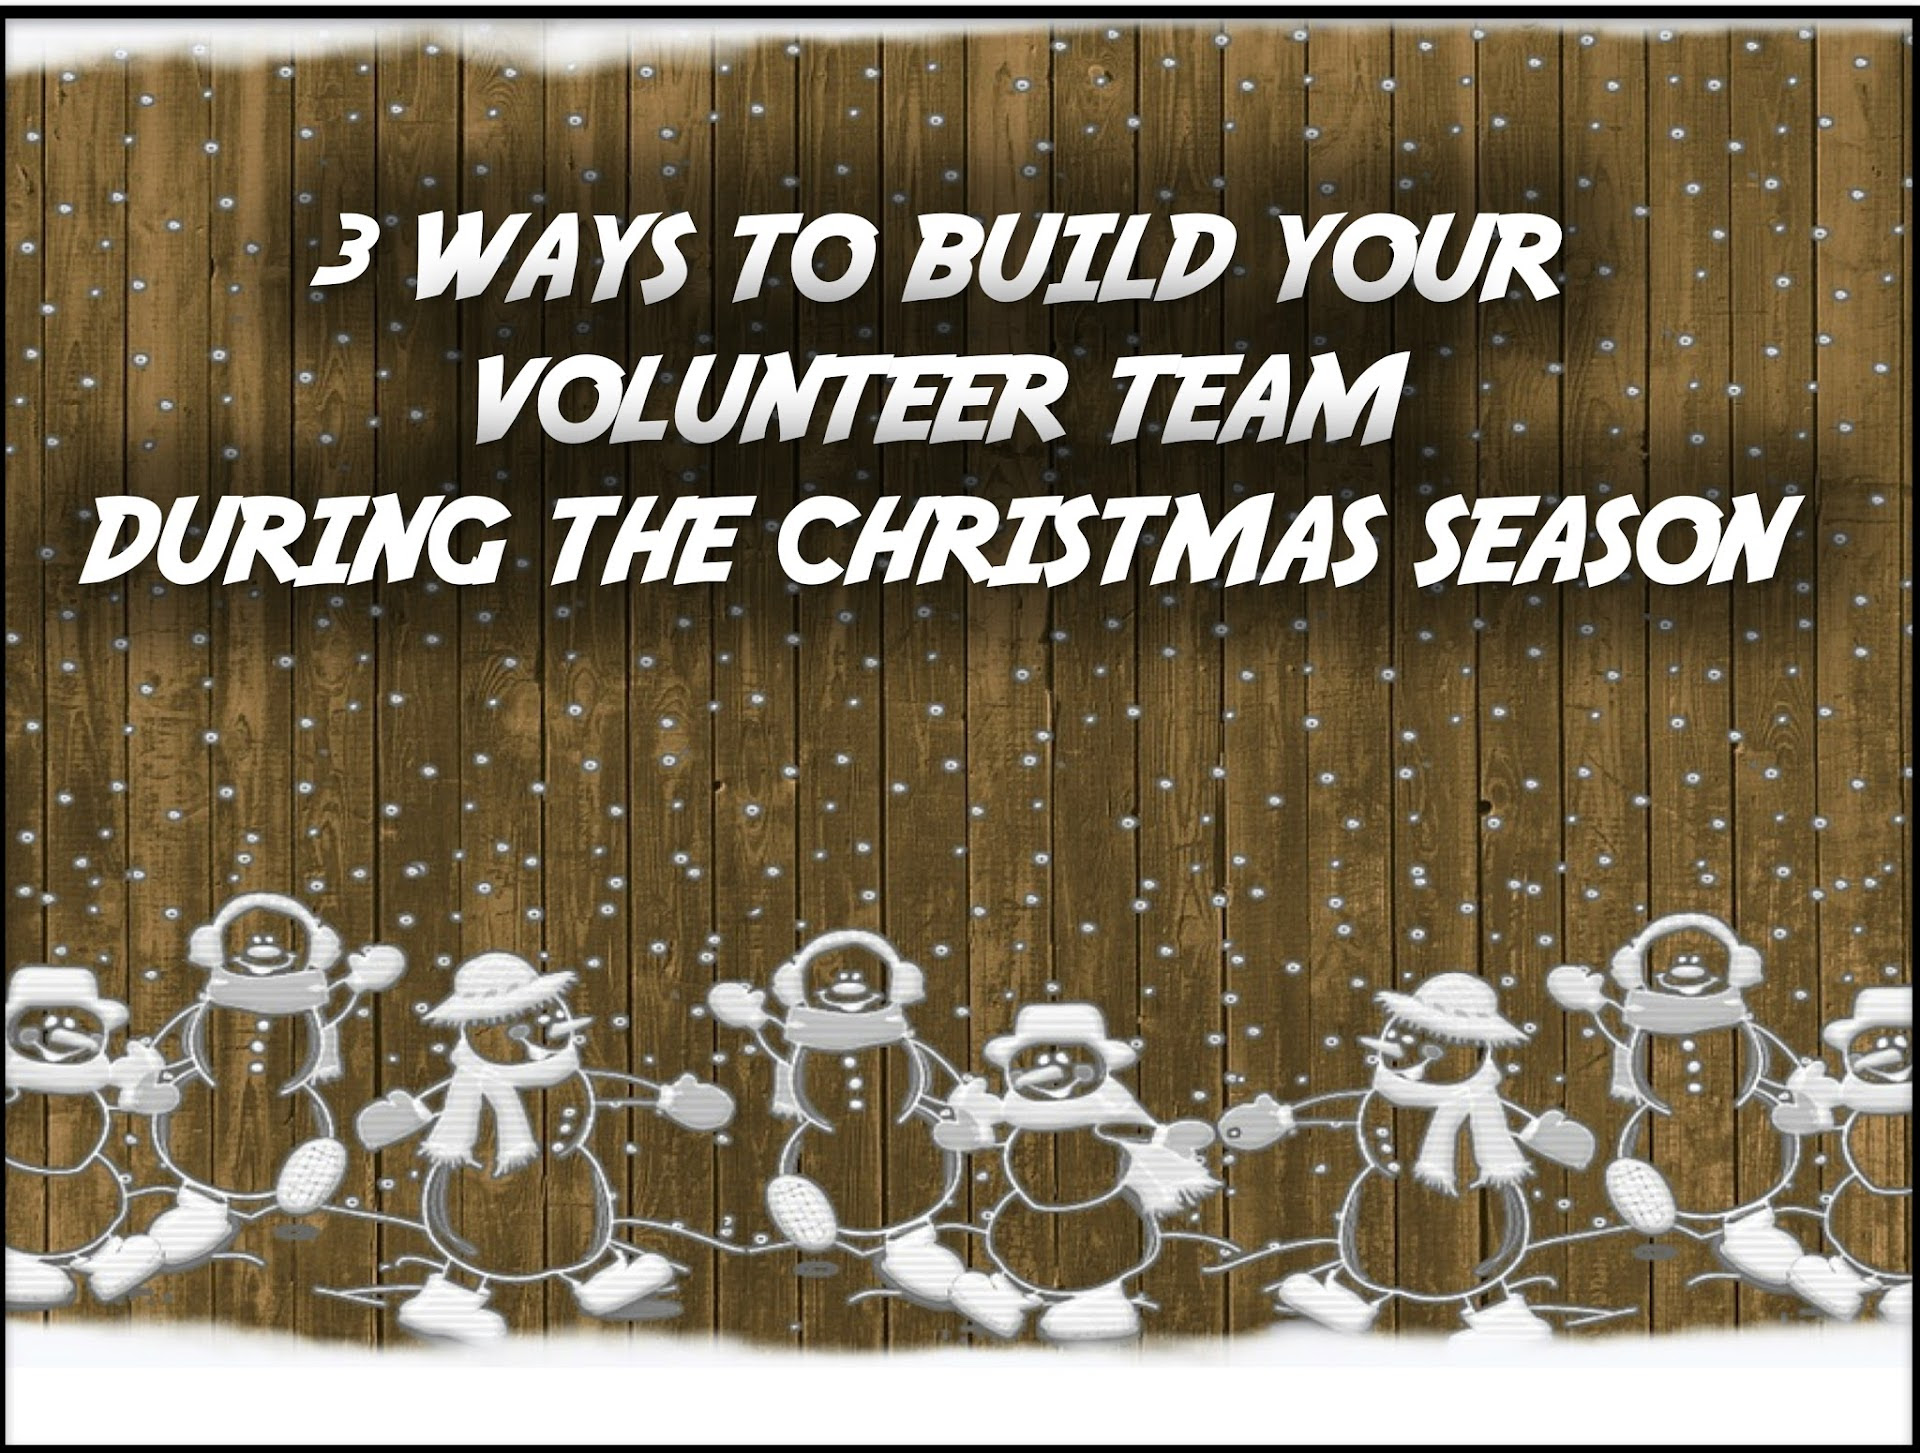 3 Ways to Build Your Volunteer Team During the Christmas Season